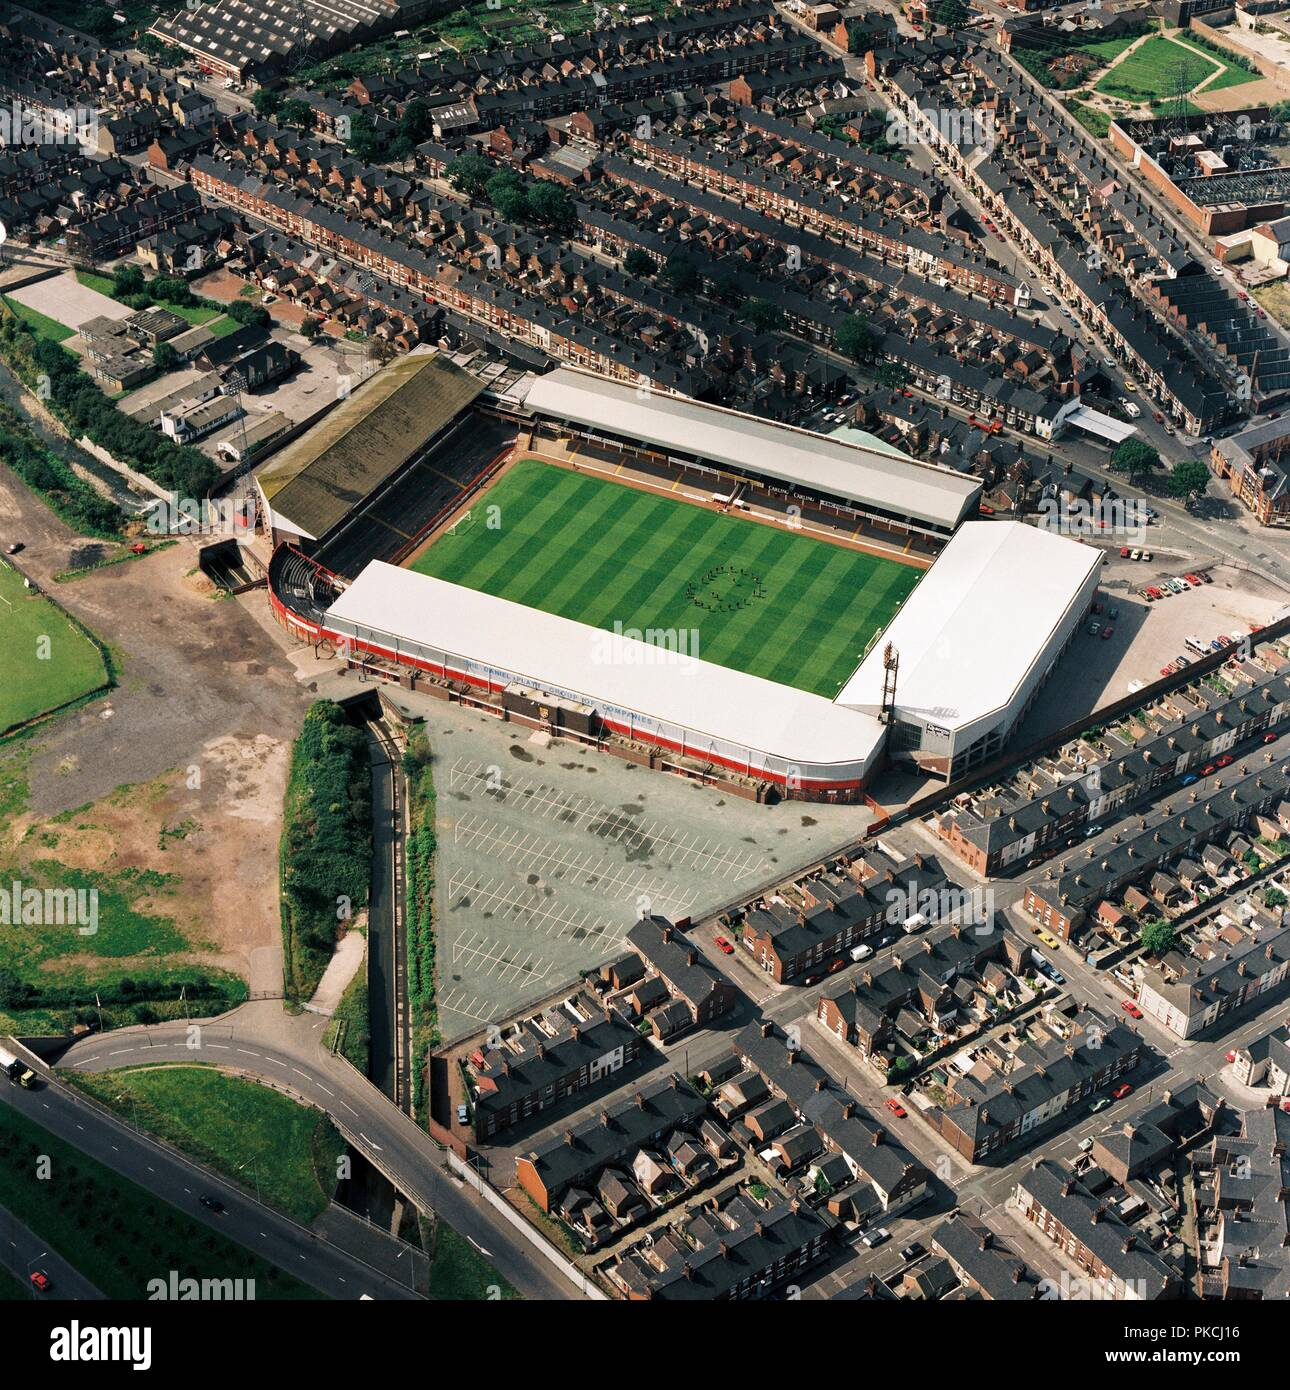 Victoria Ground, Stoke-on-Trent, 1992. Aerial view of the former home of Stoke City Football Club. The club moved to its current home ground, the Britannia Stadium in 1997. Photographed in 1992 when the Potters under Lou Macari went to the league play-offs and won the Football League Trophy. In the next season (1992-1993) they finished as Champions of Division 2 and achieved promotion to the second tier of English football. - Stock Image